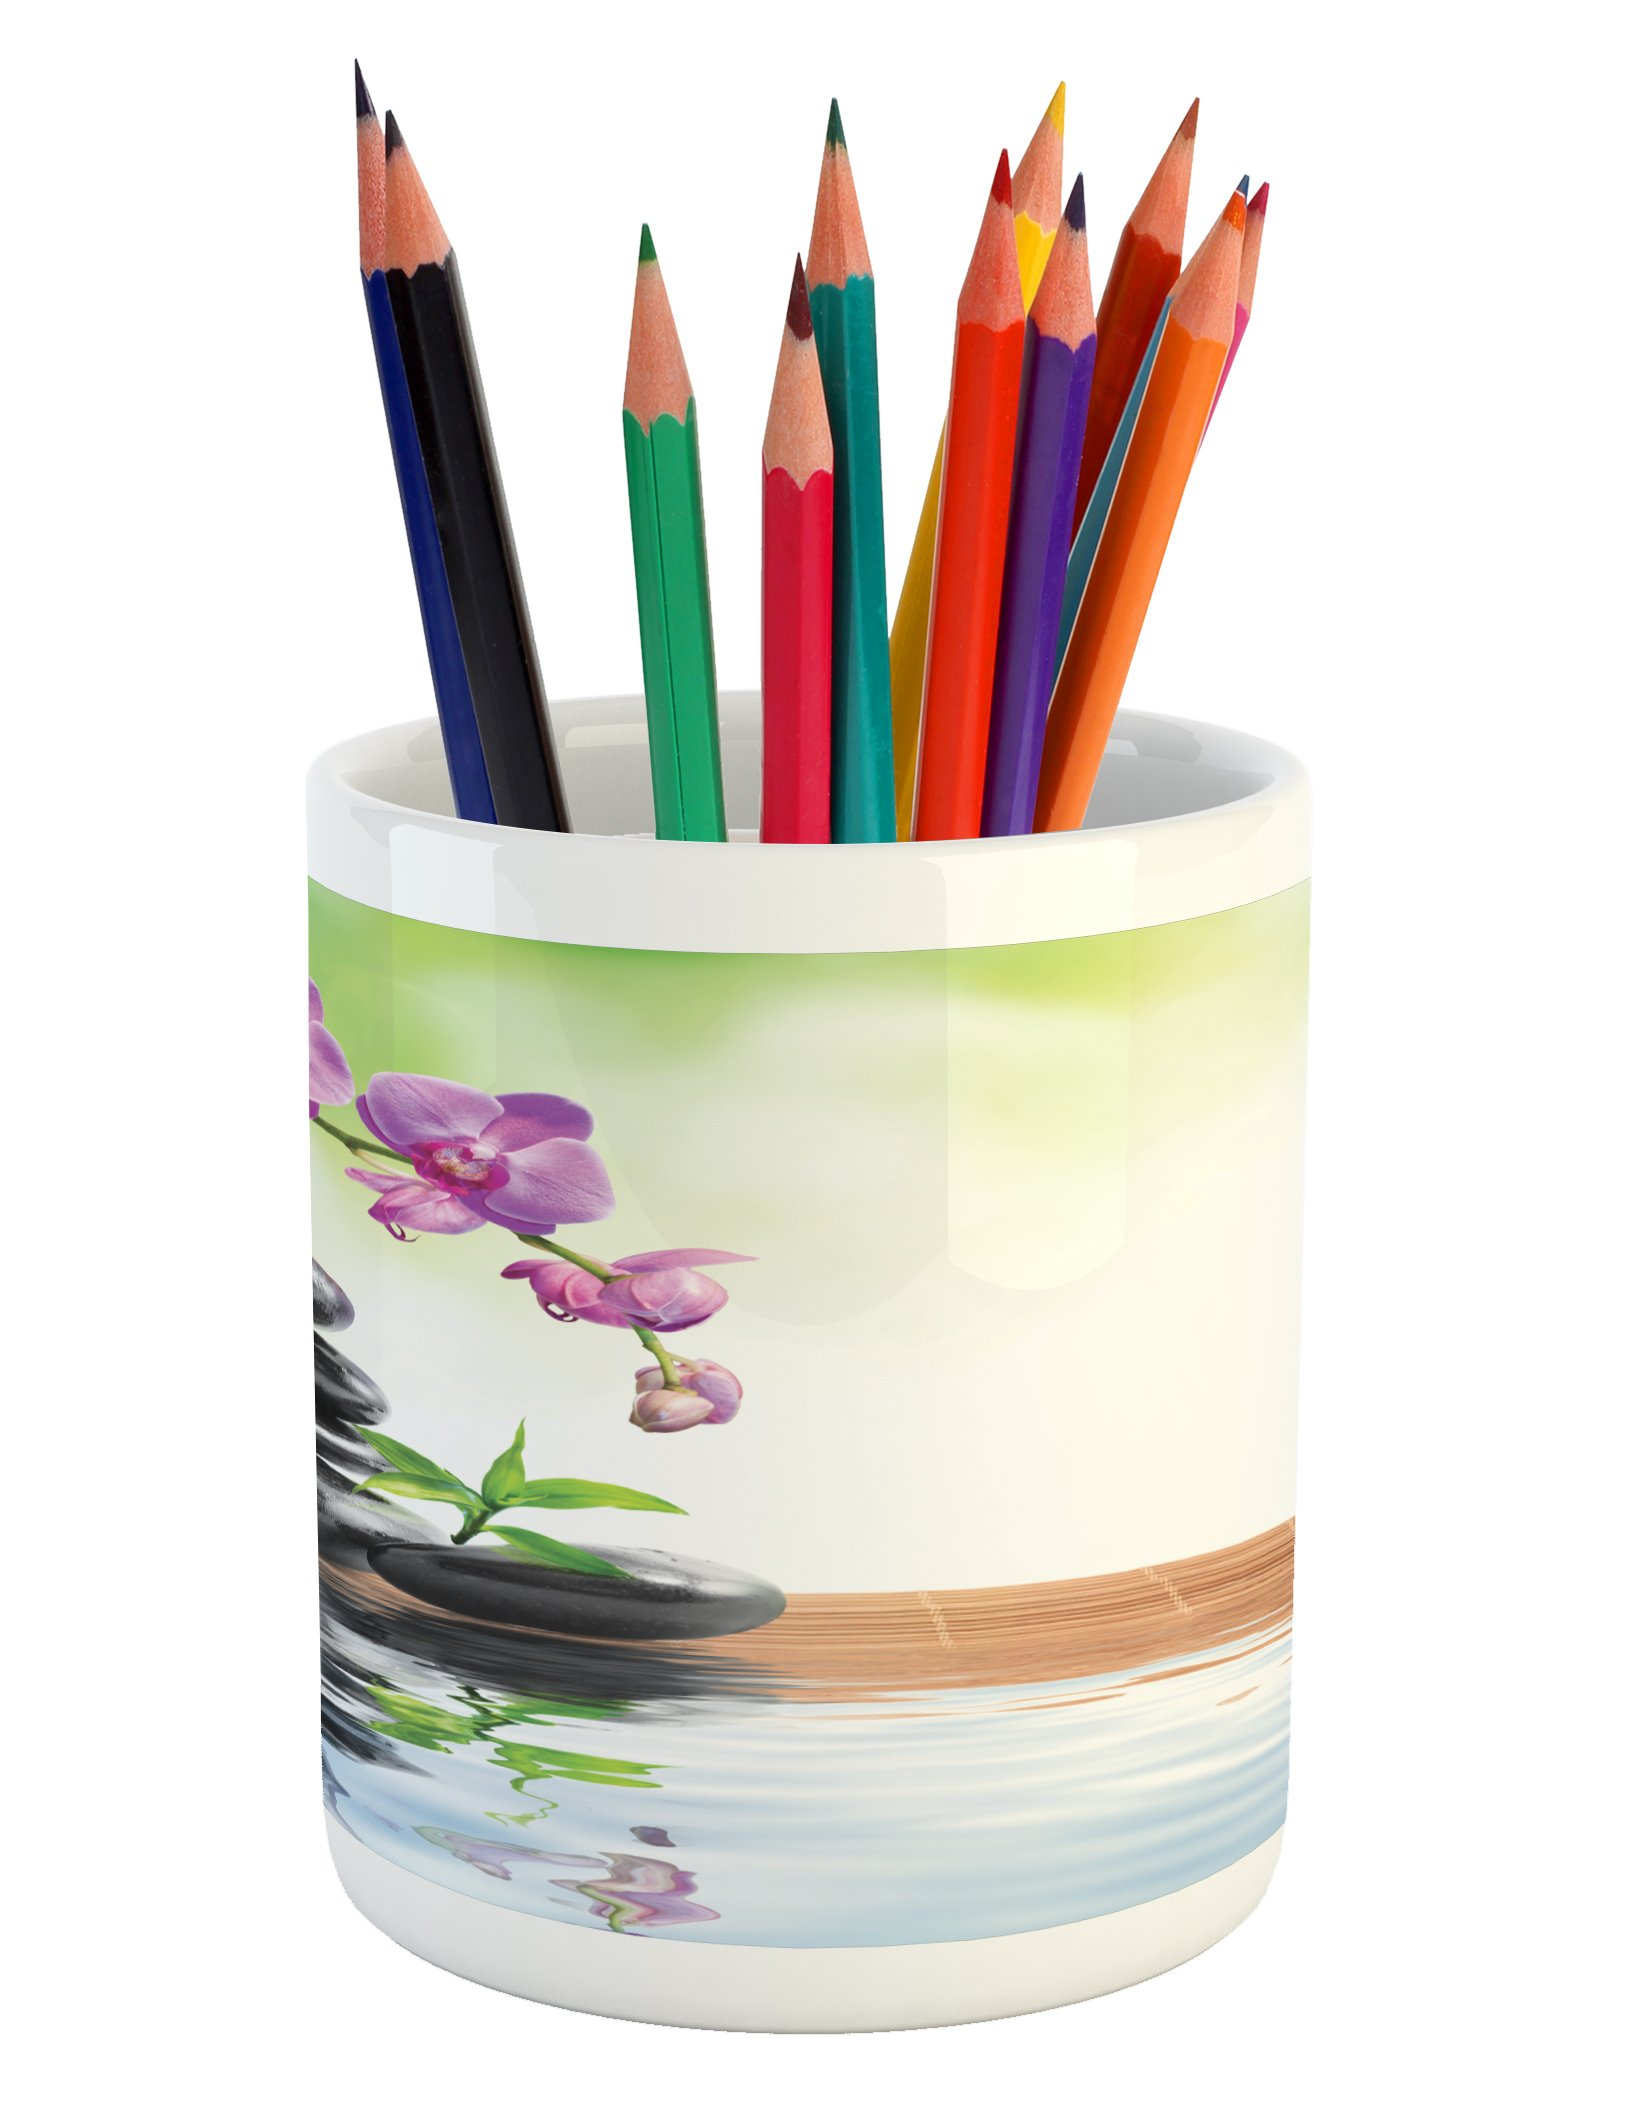 Ambesonne Spa Pencil Pen Holder, Spa with Spring Water Health Giving Properties Asian Eastern Way of Getting Better Art, Printed Ceramic Pencil Pen Holder for Desk Office Accessory, Multicolor